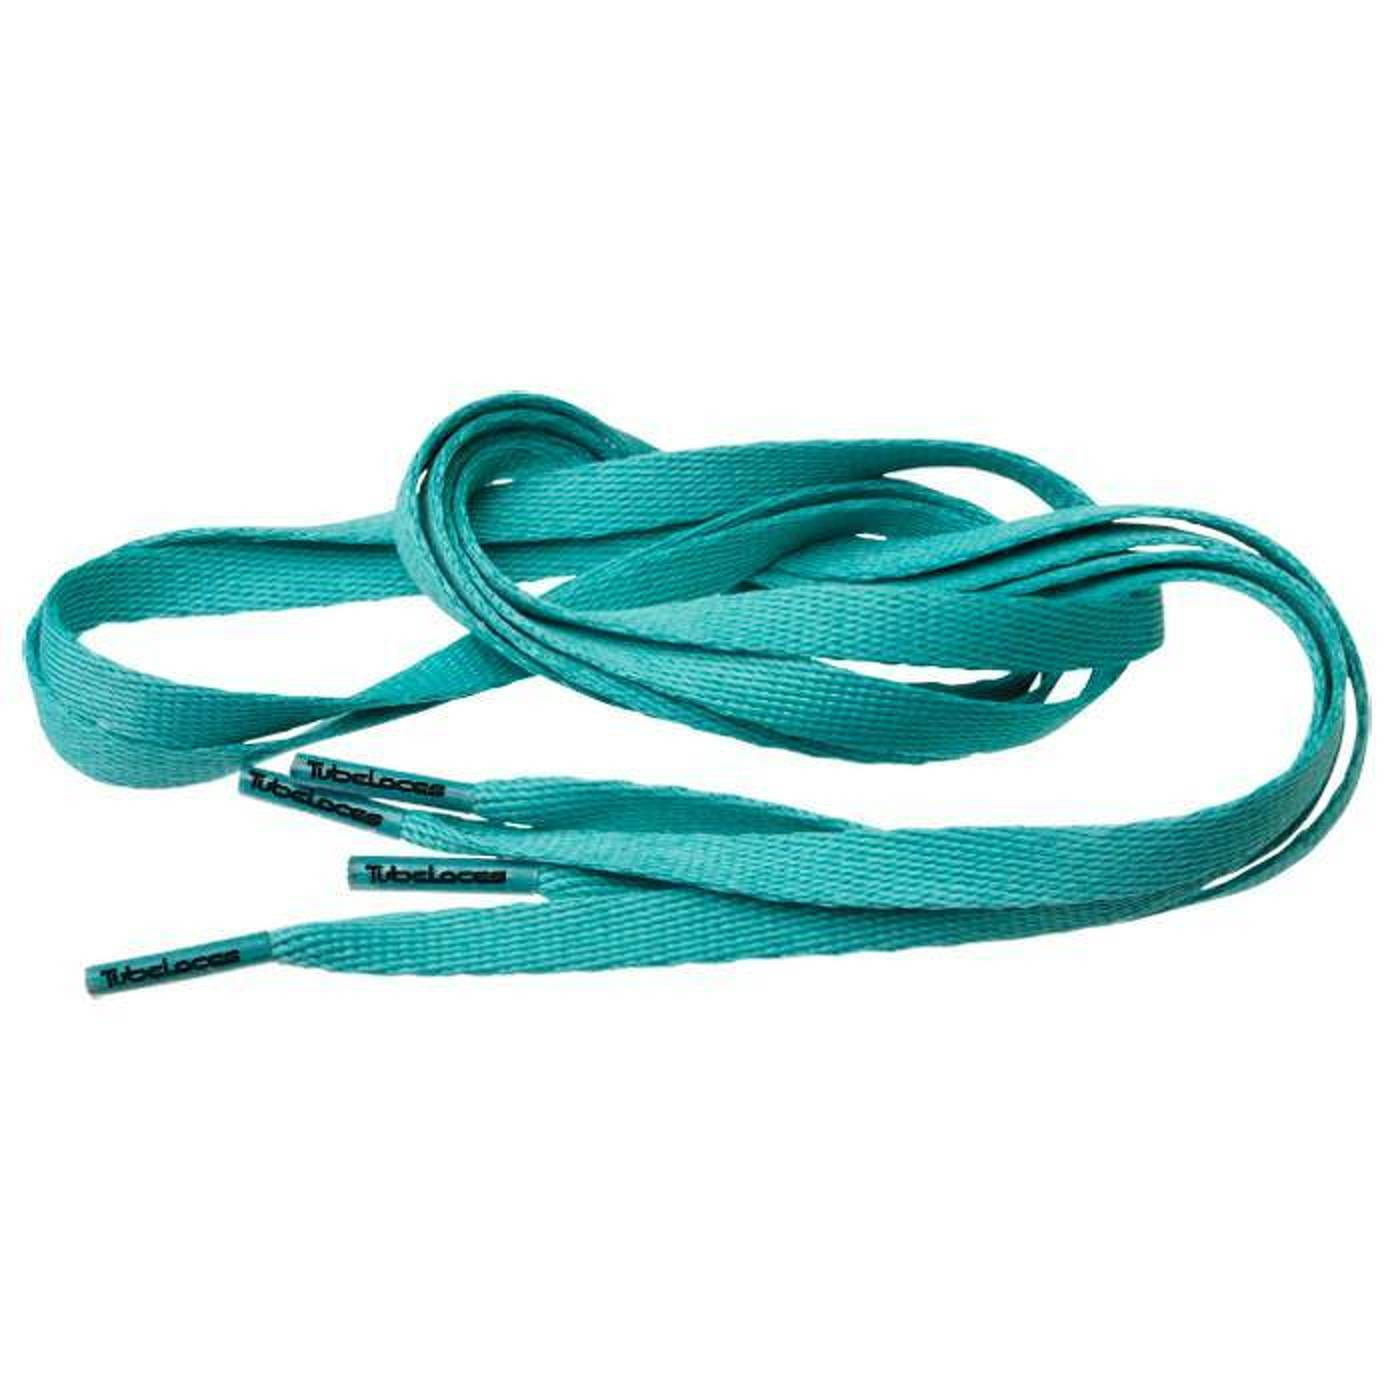 MD Tube Laces 140 turquoise